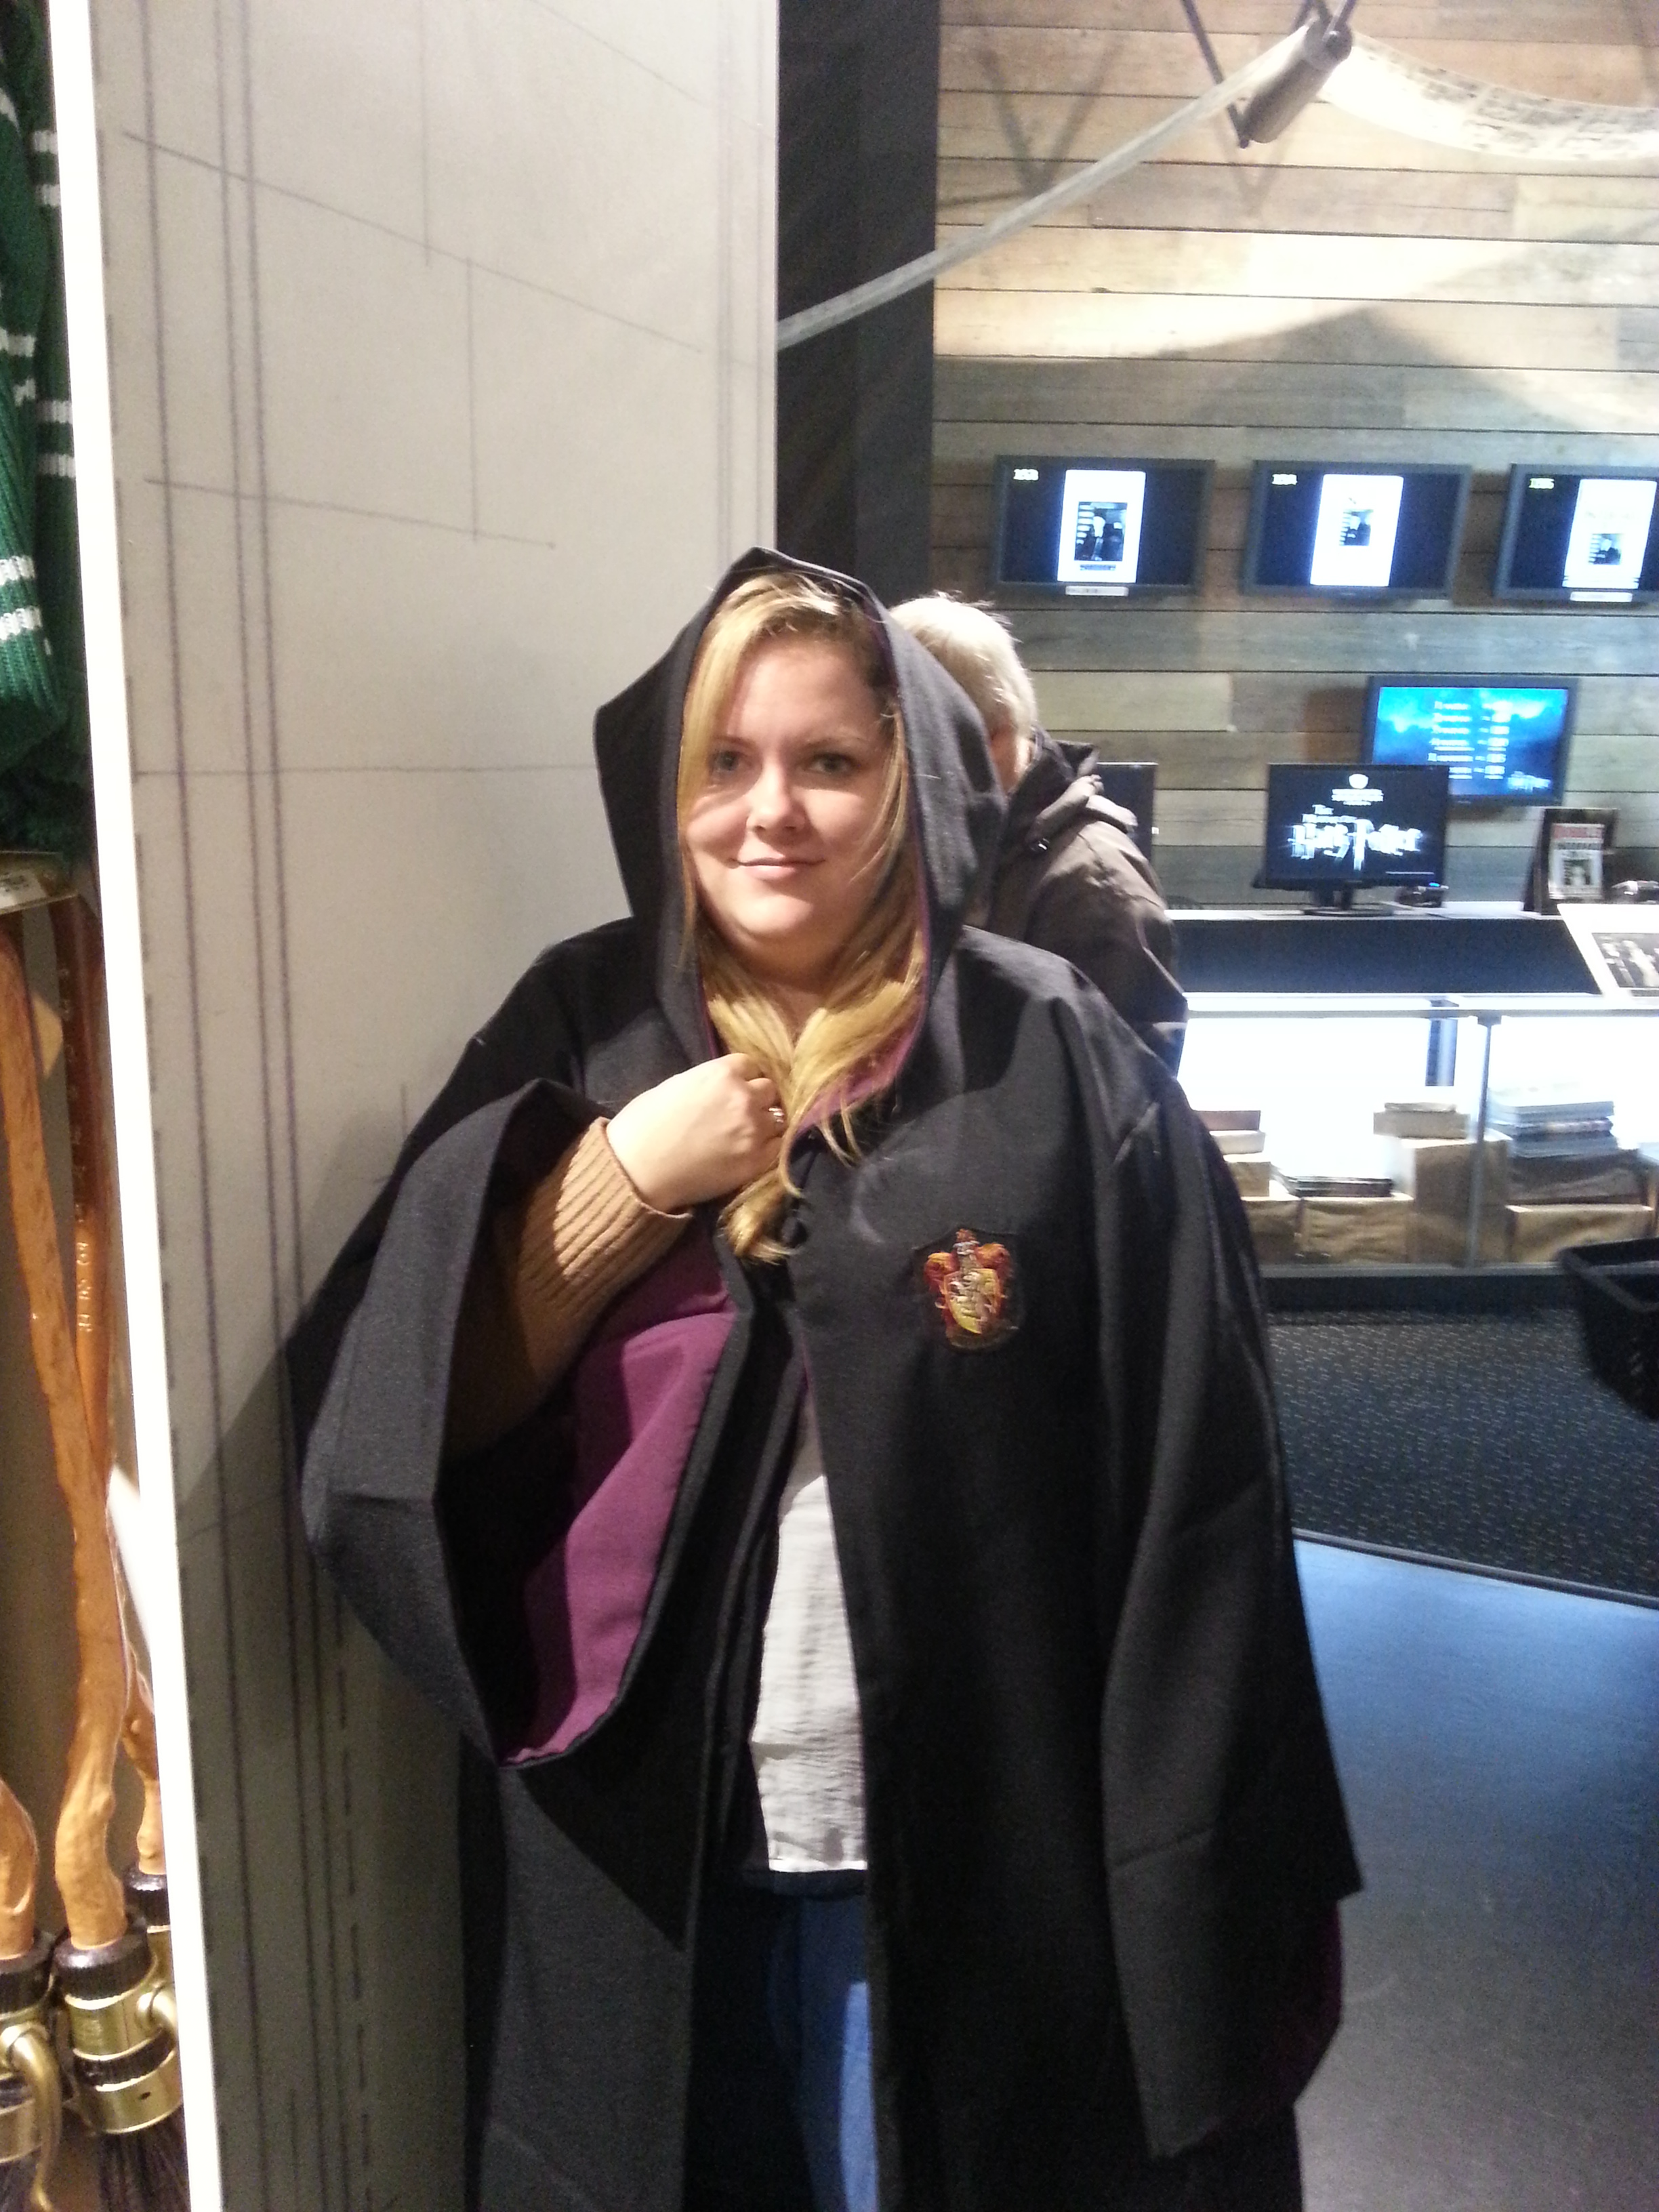 Trying on some wizard's robes. I think they suit me. Let's go to Hogwarts!